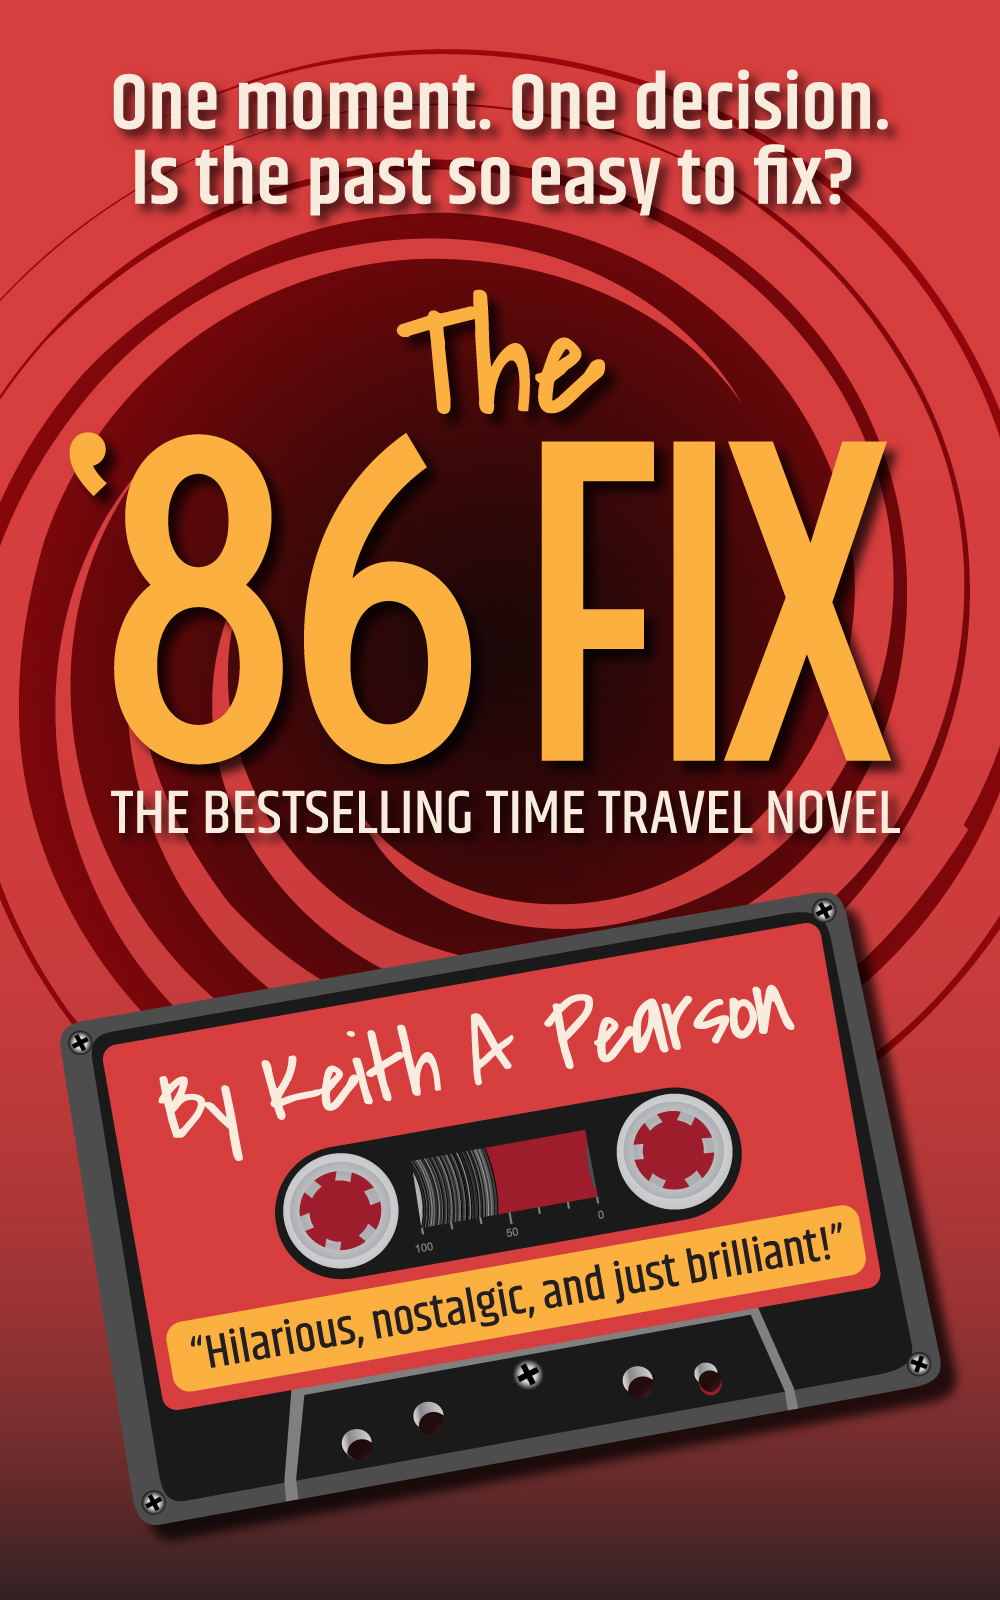 The '86 Fix Novel by Keith A Pearson